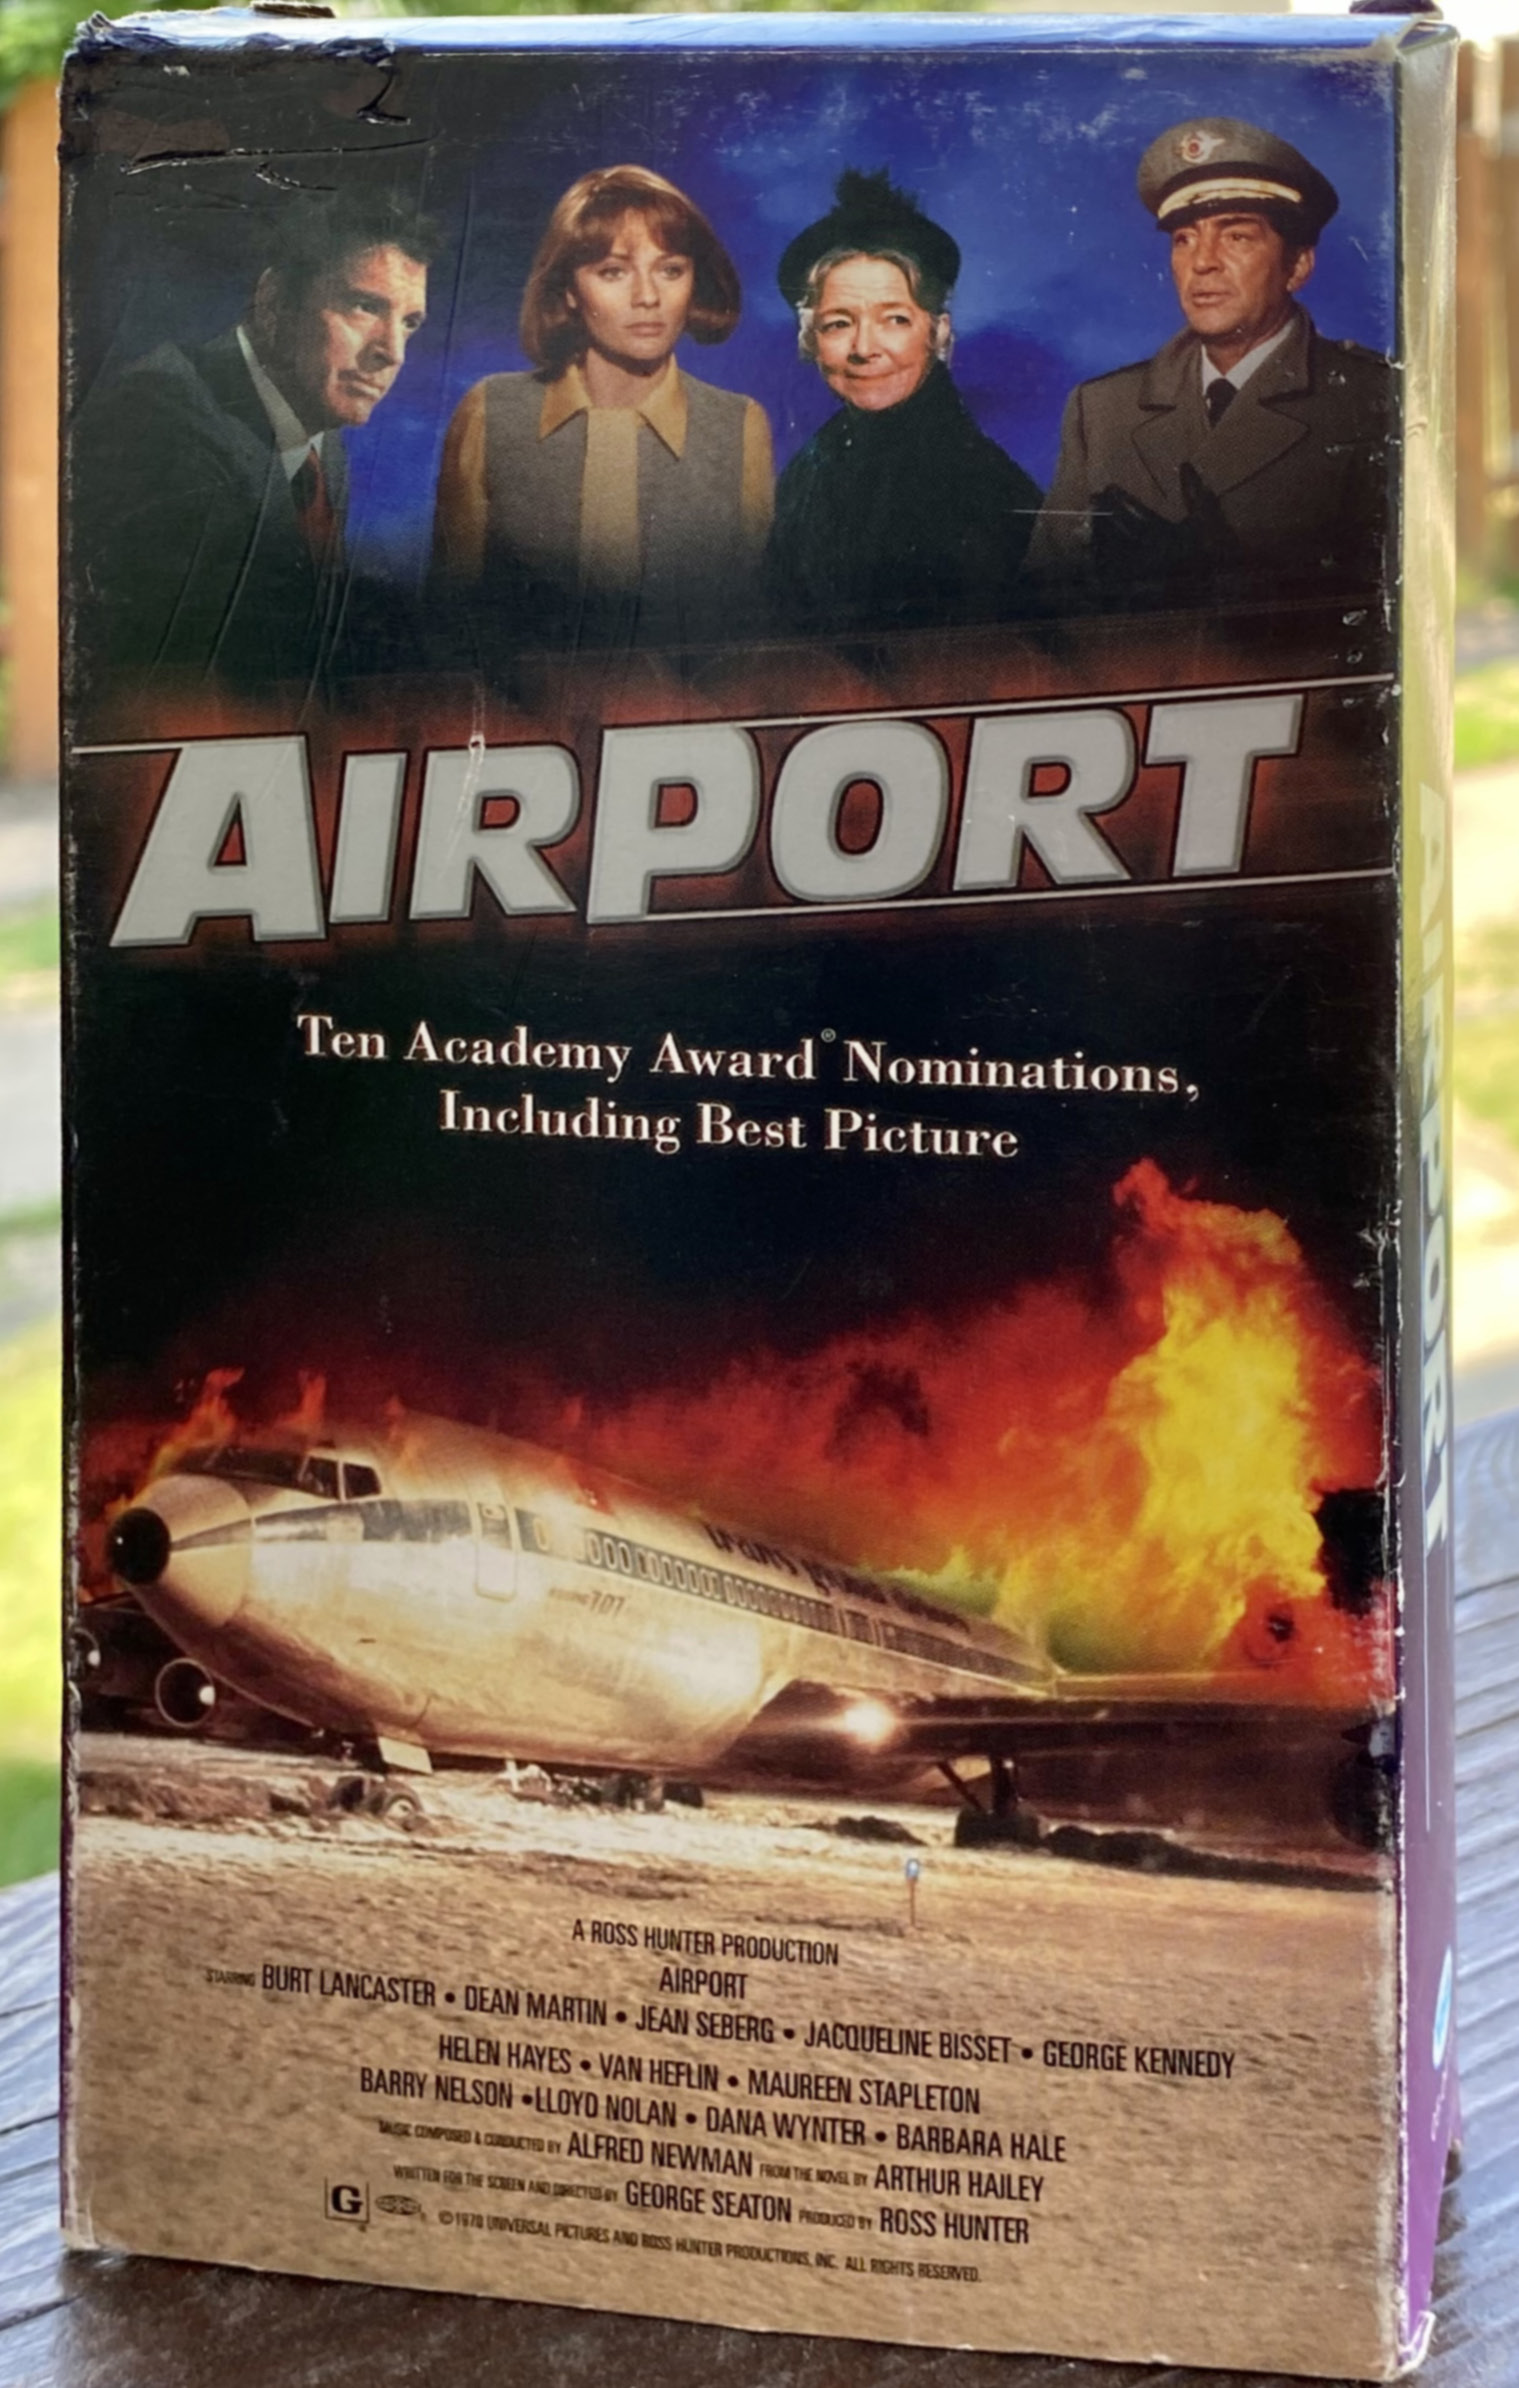 VHS cover with 4 people and an airplane on fire